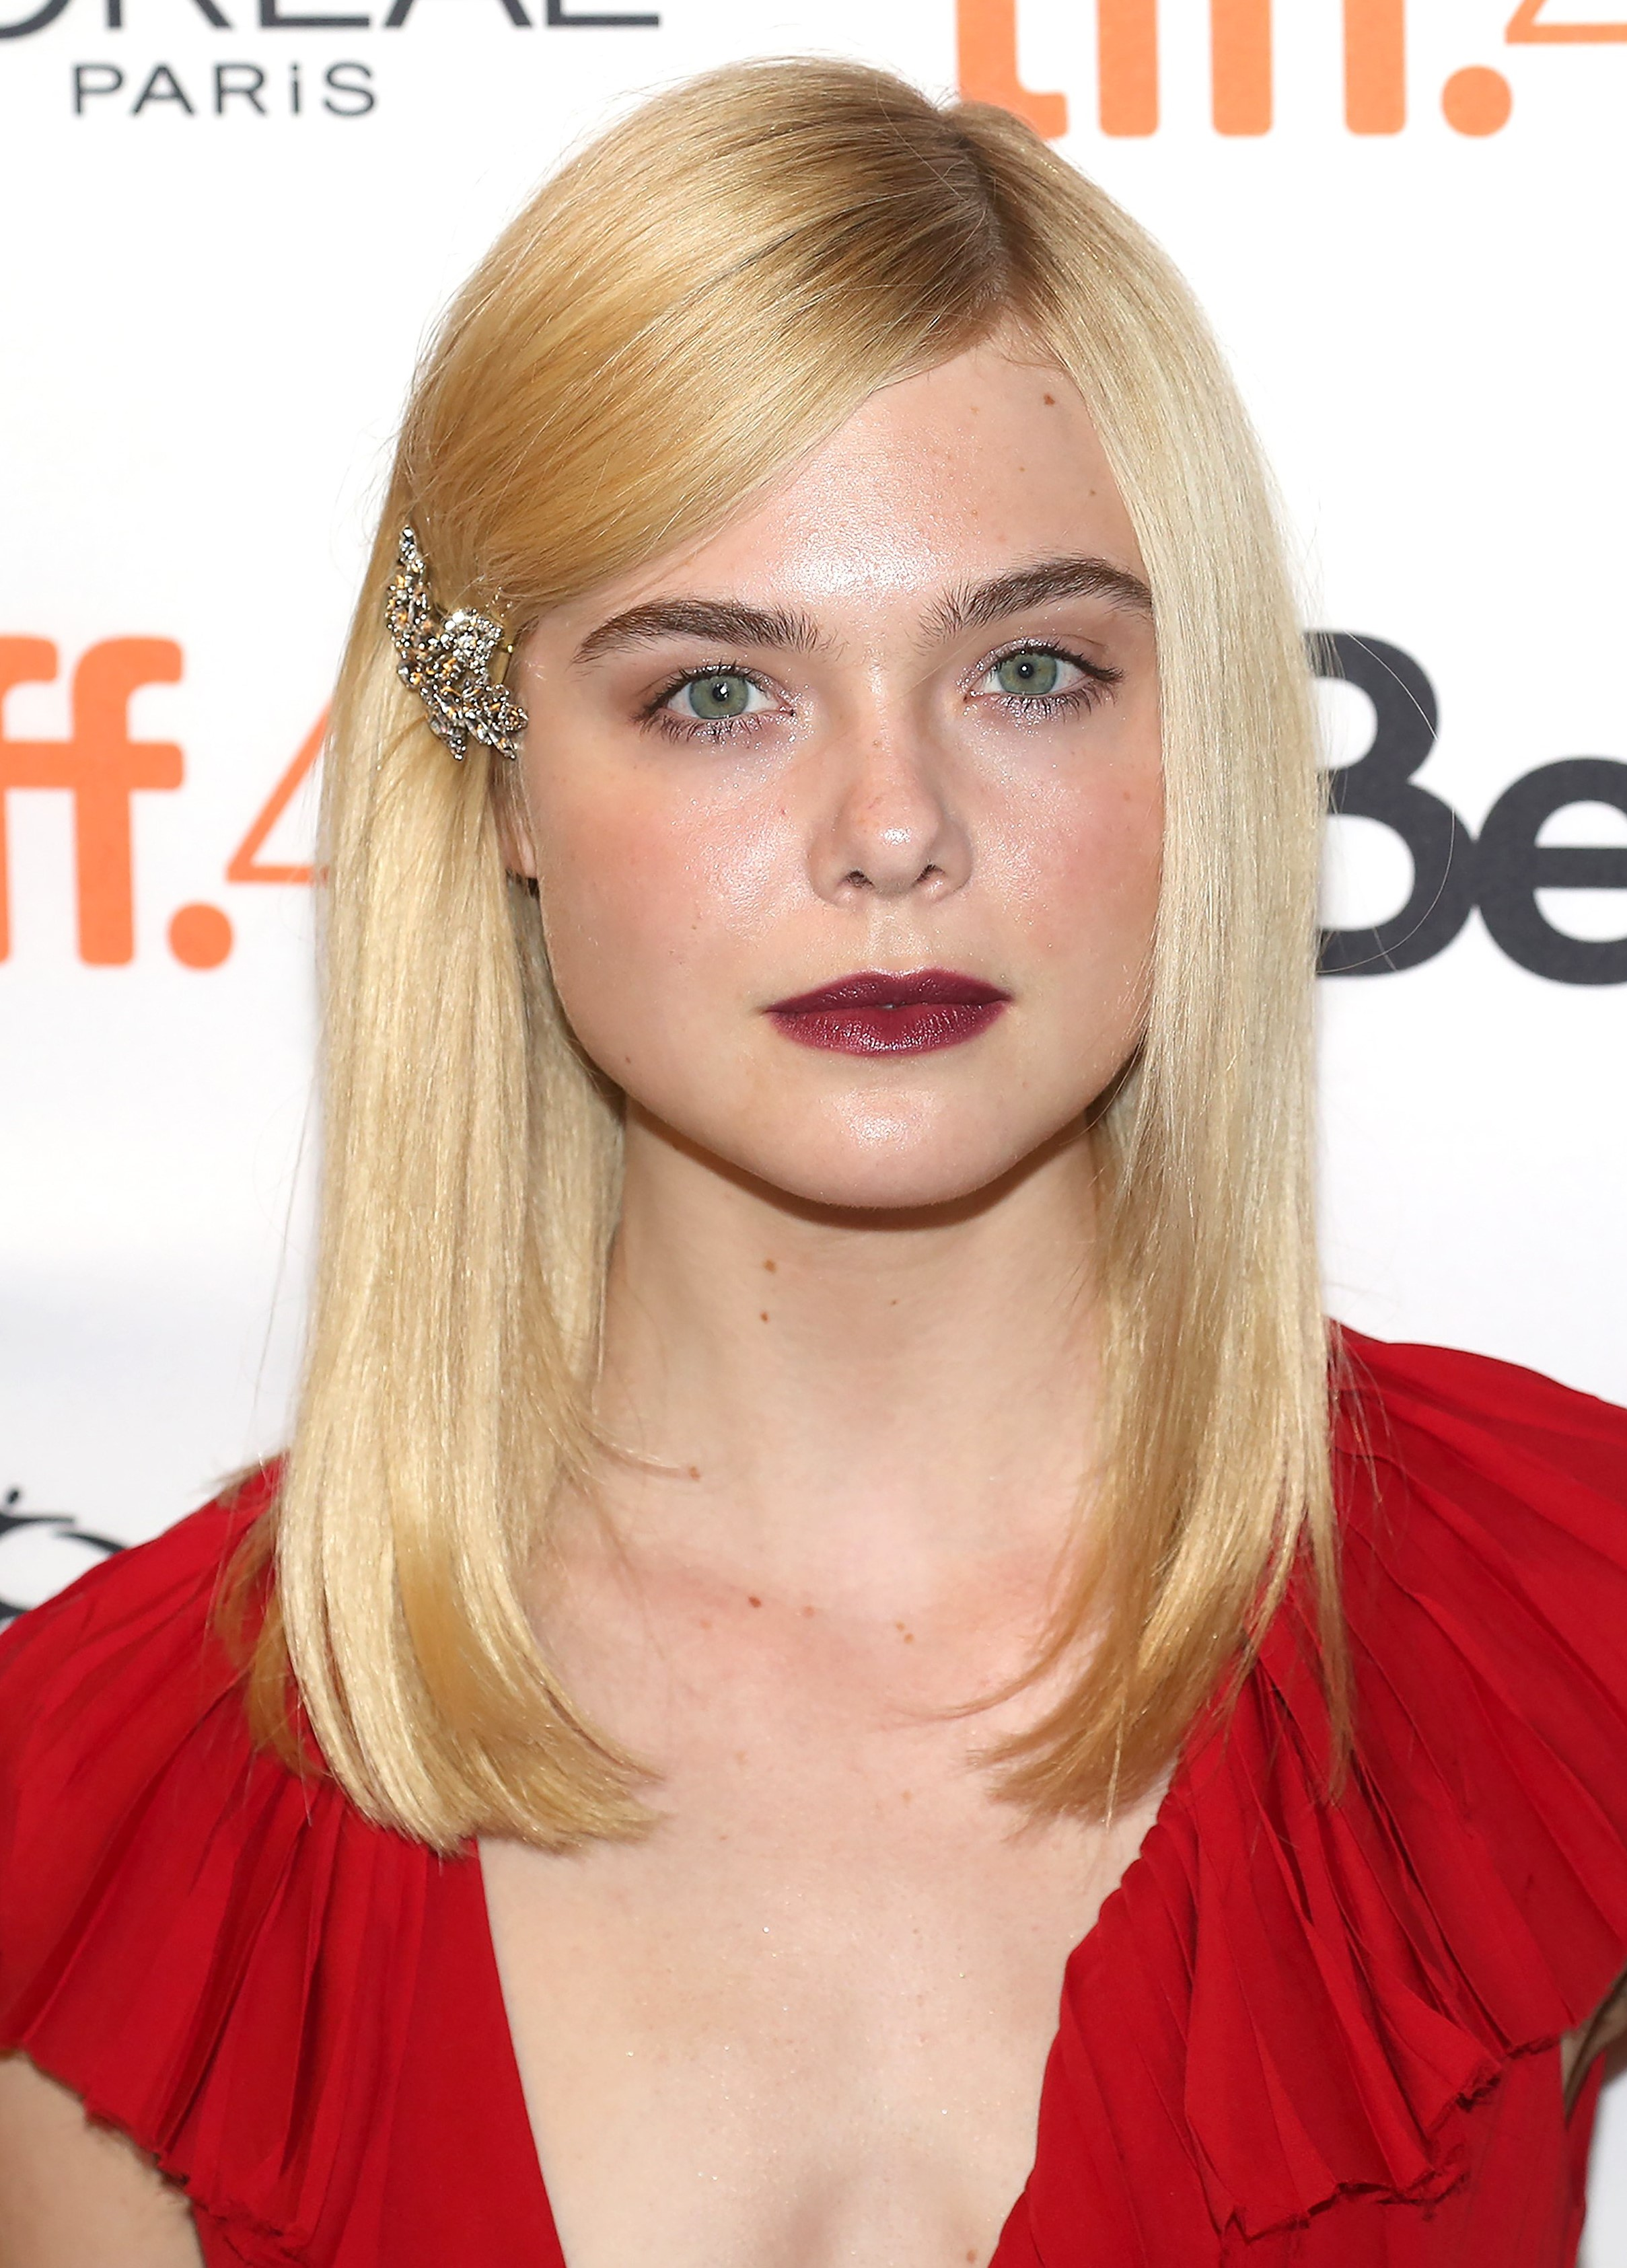 side-how-to-style-hair-accessories-clip-barrettes-wear-blonde-ellefanning.jpg